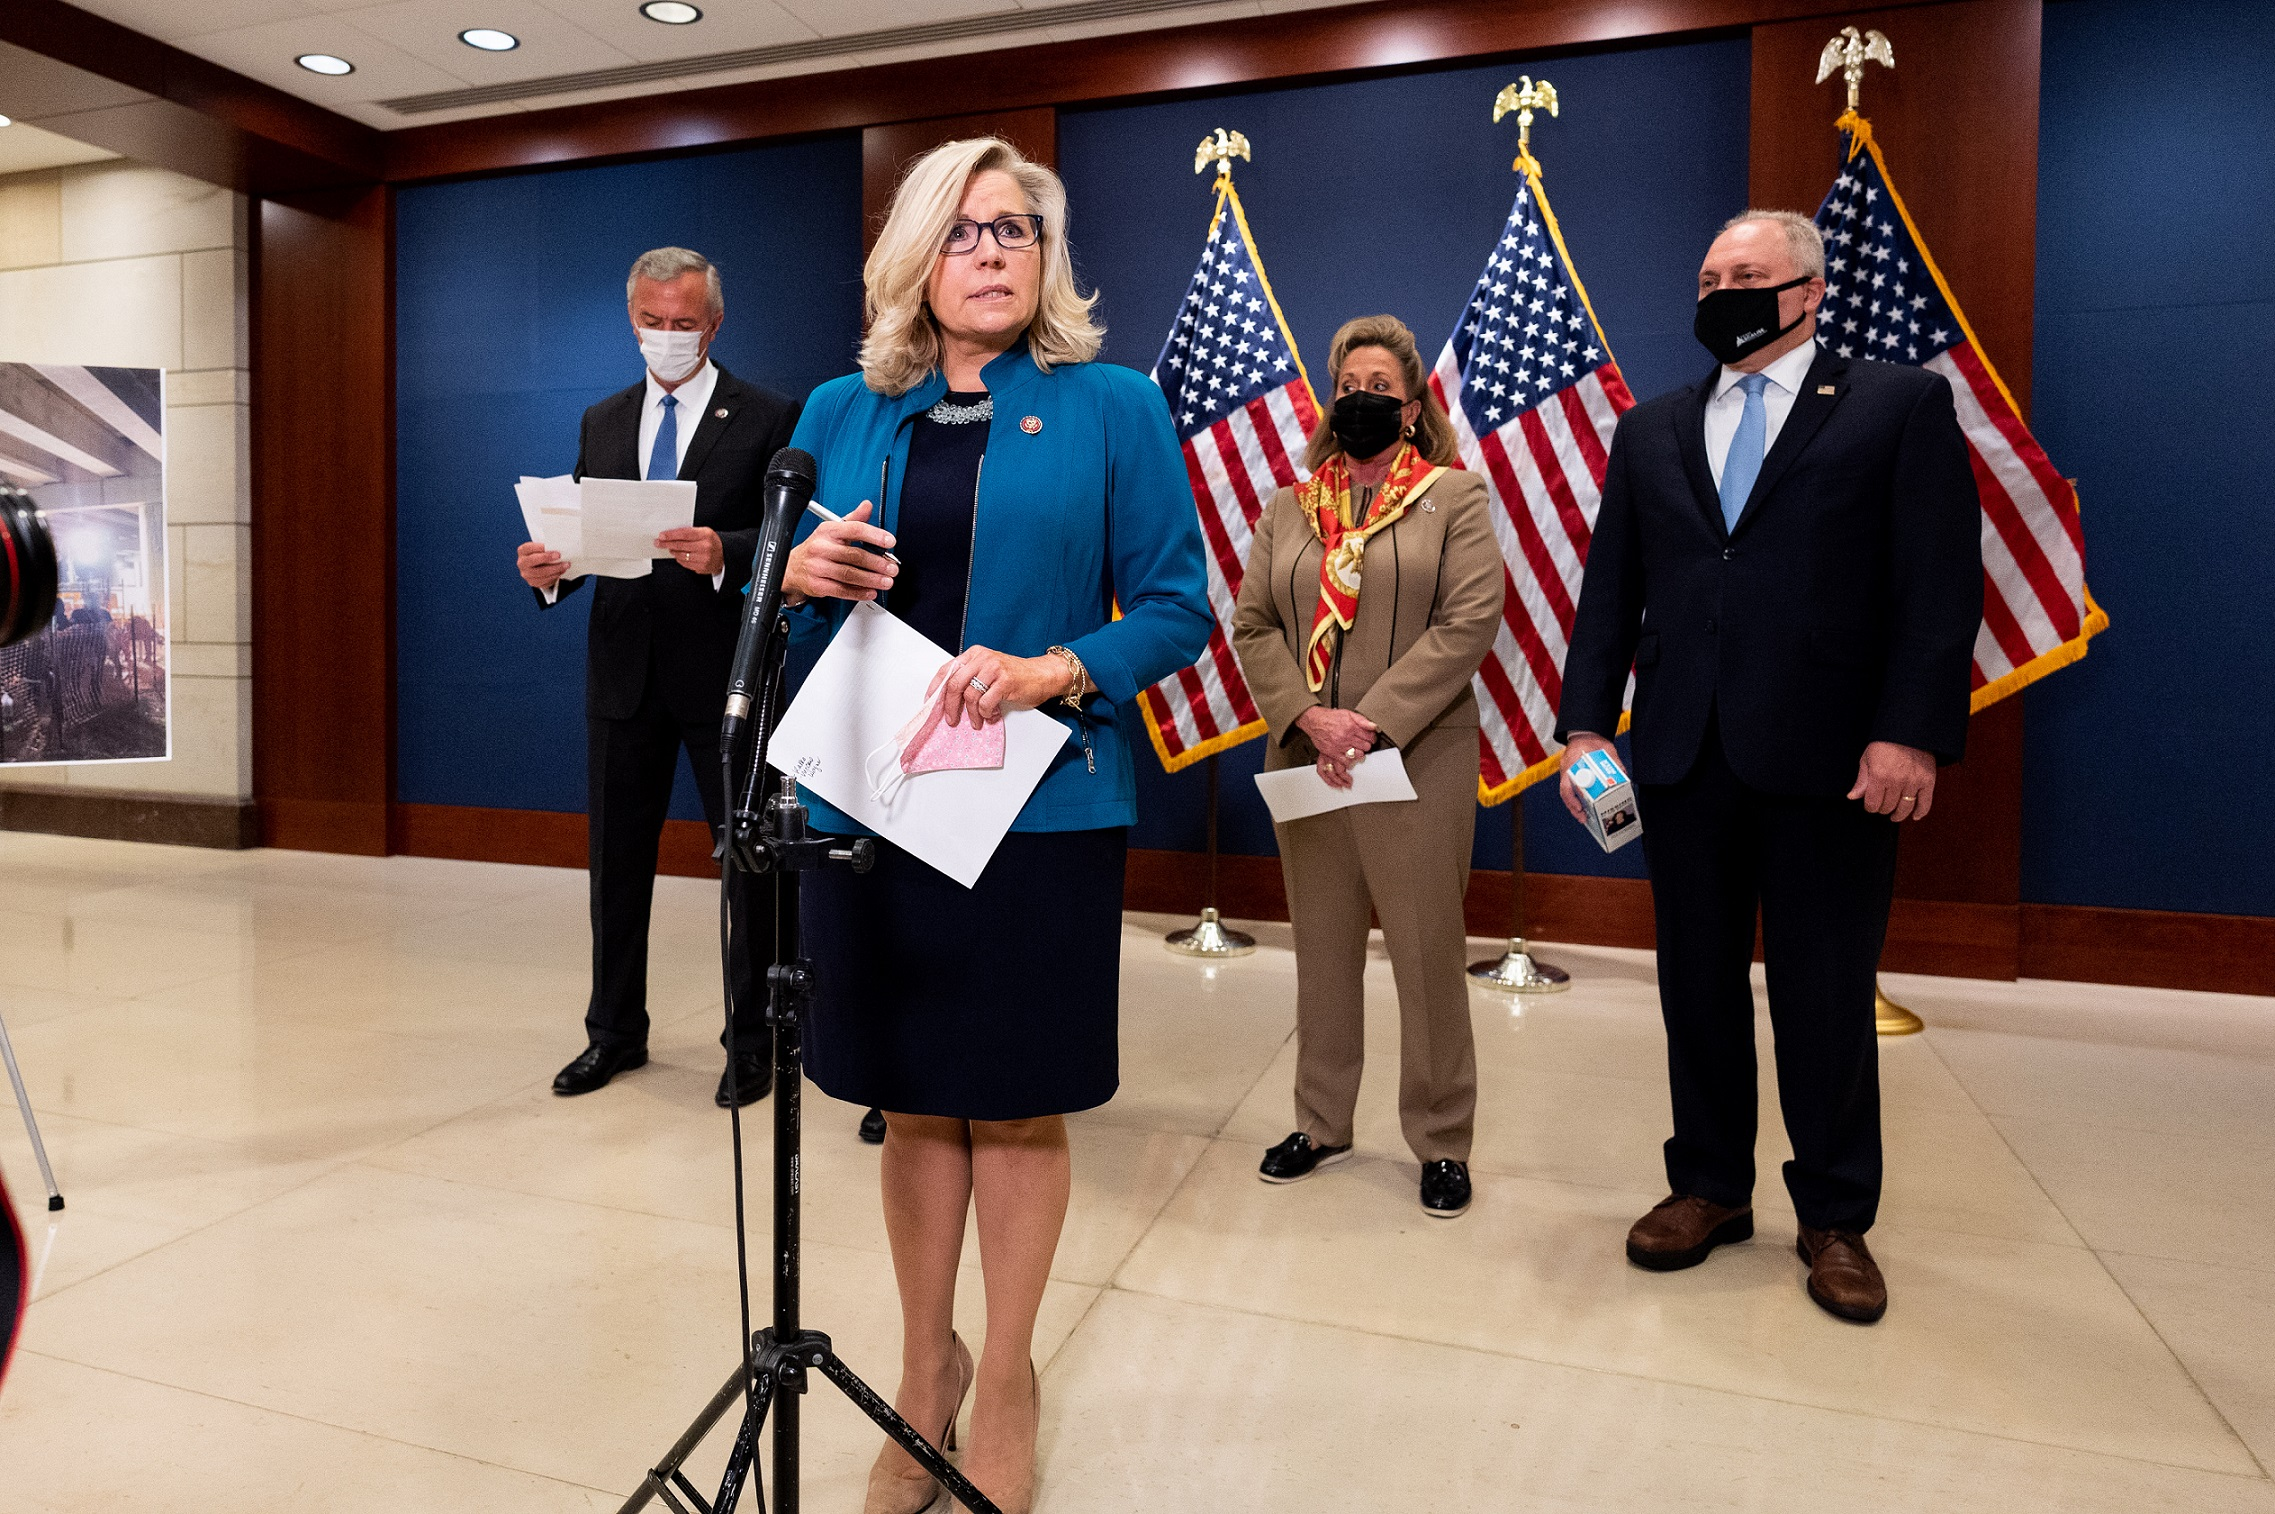 April 14, 2021 - Washington, DC, United States: U.S. Representative Liz Cheney (R-WY) speaking at the post GOP House conference meeting press conference. (Photo by Michael Brochstein/Sipa USA)No Use Germany.